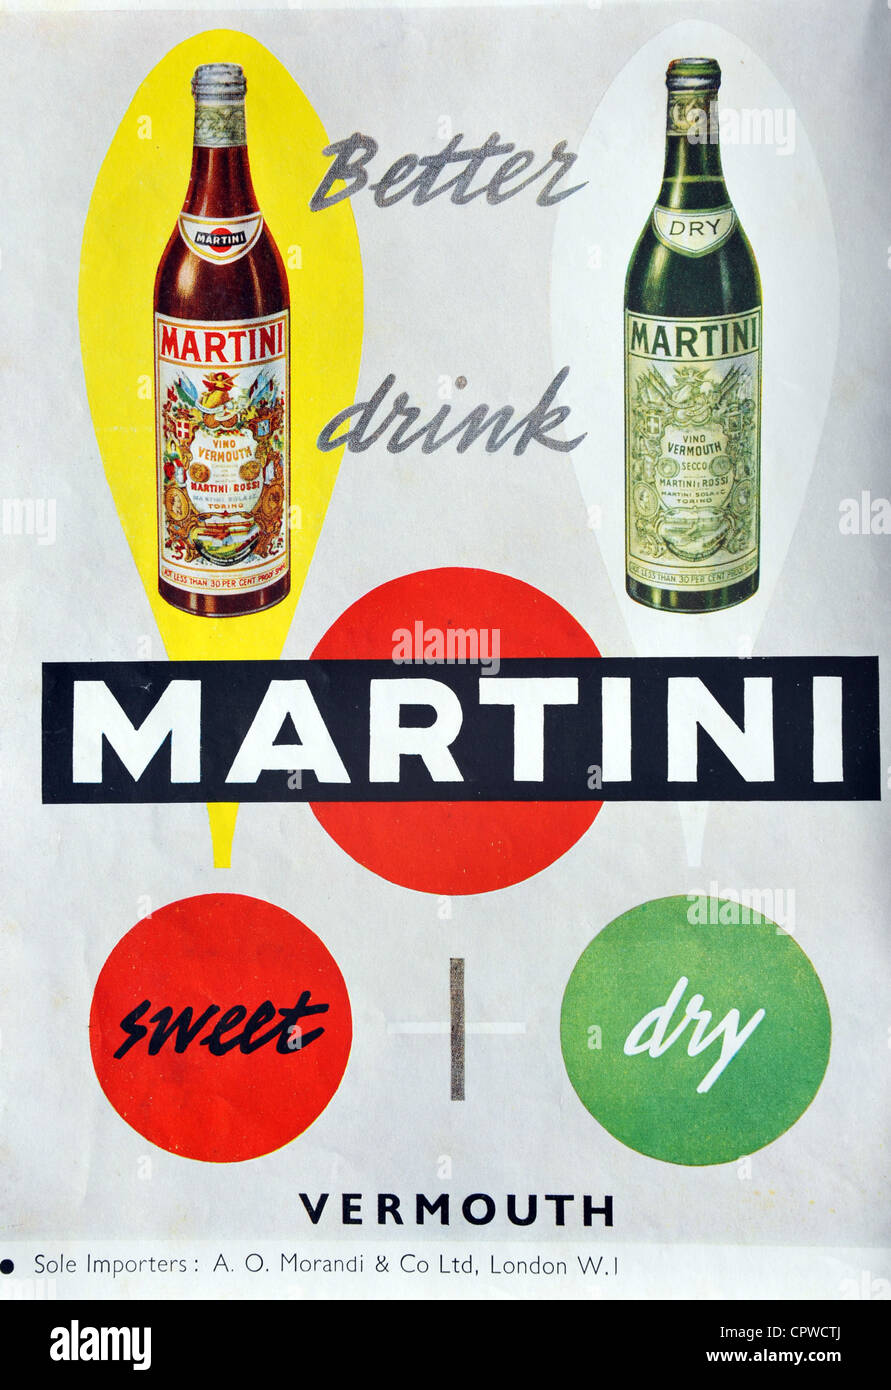 Martini drinks advert from 1953. Britain. - Stock Image